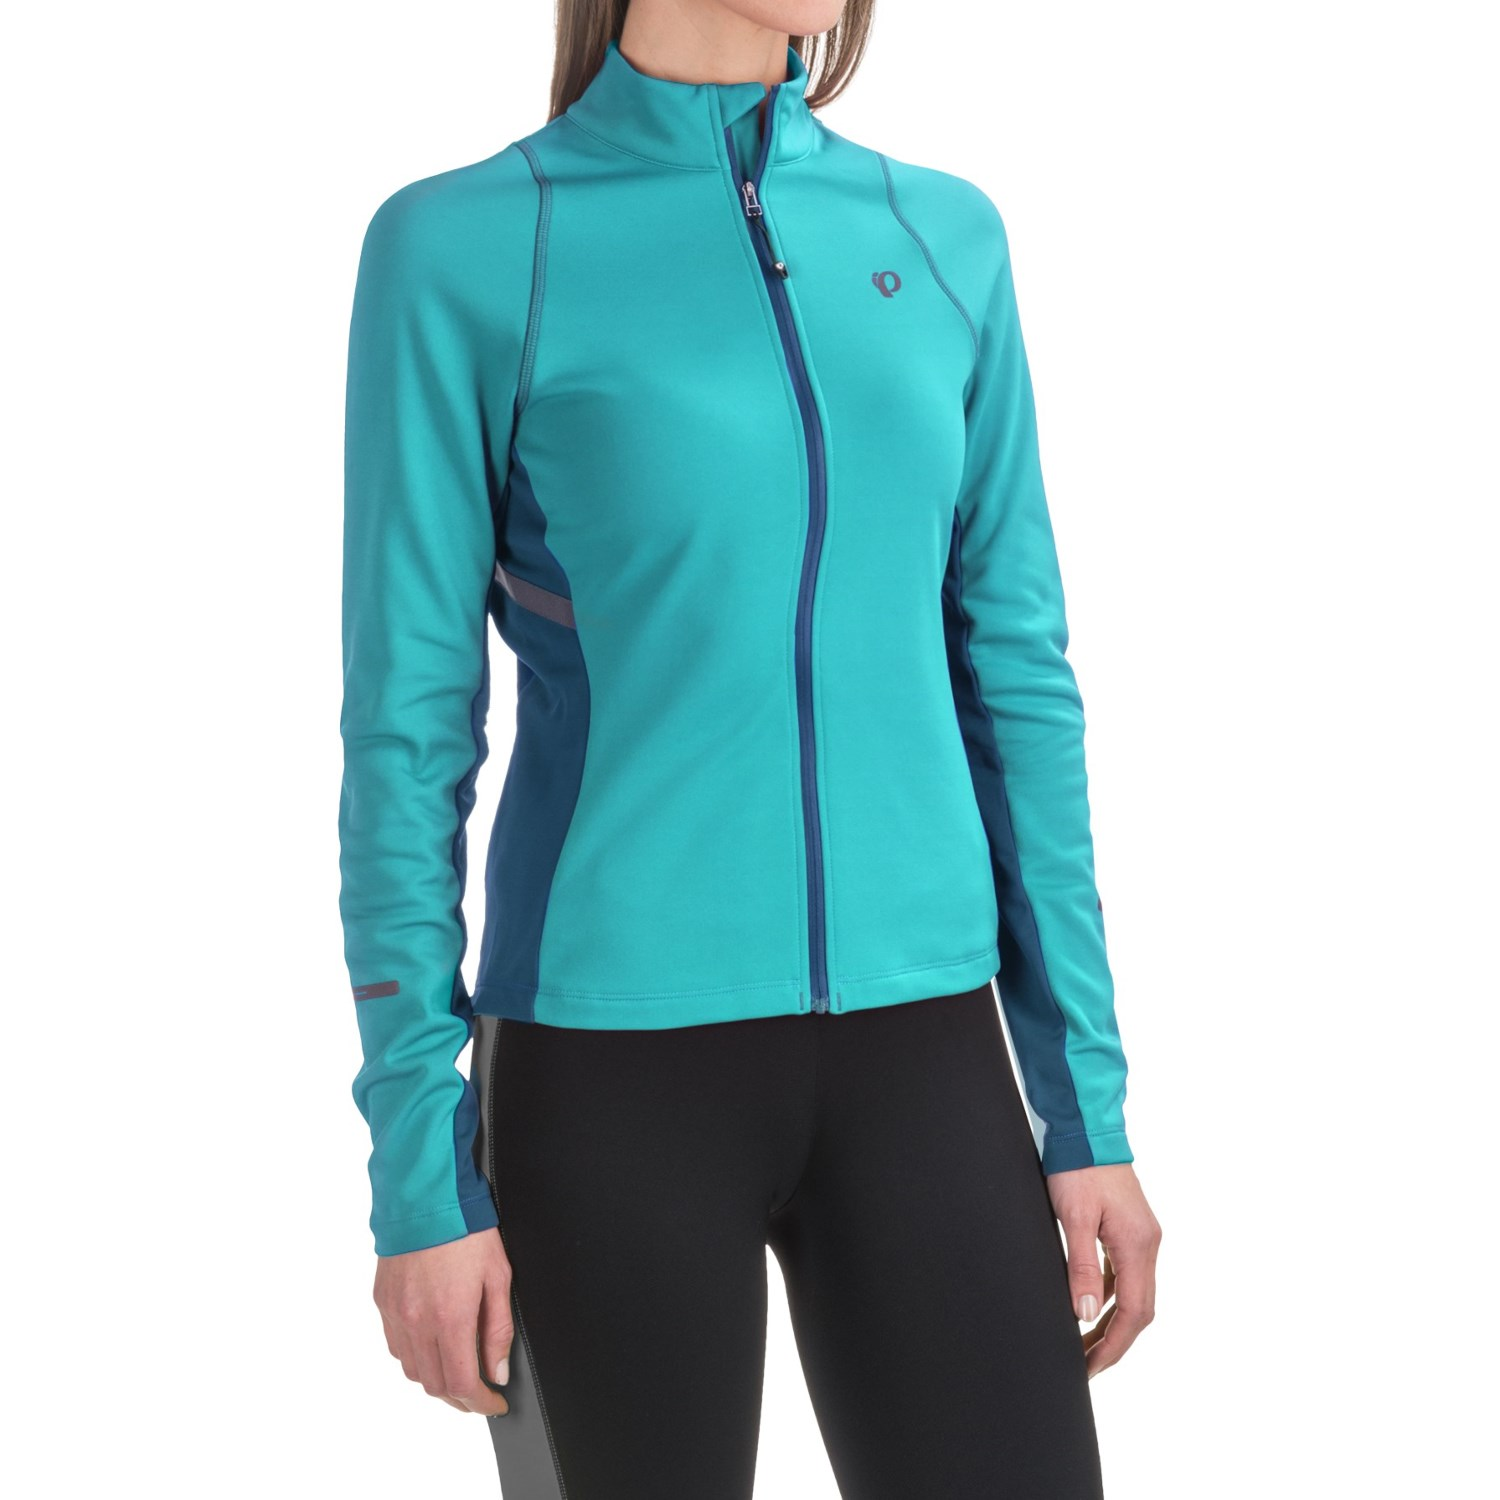 Pearl izumi select thermal escape cycling jersey for for Pearl izumi cycling shirt